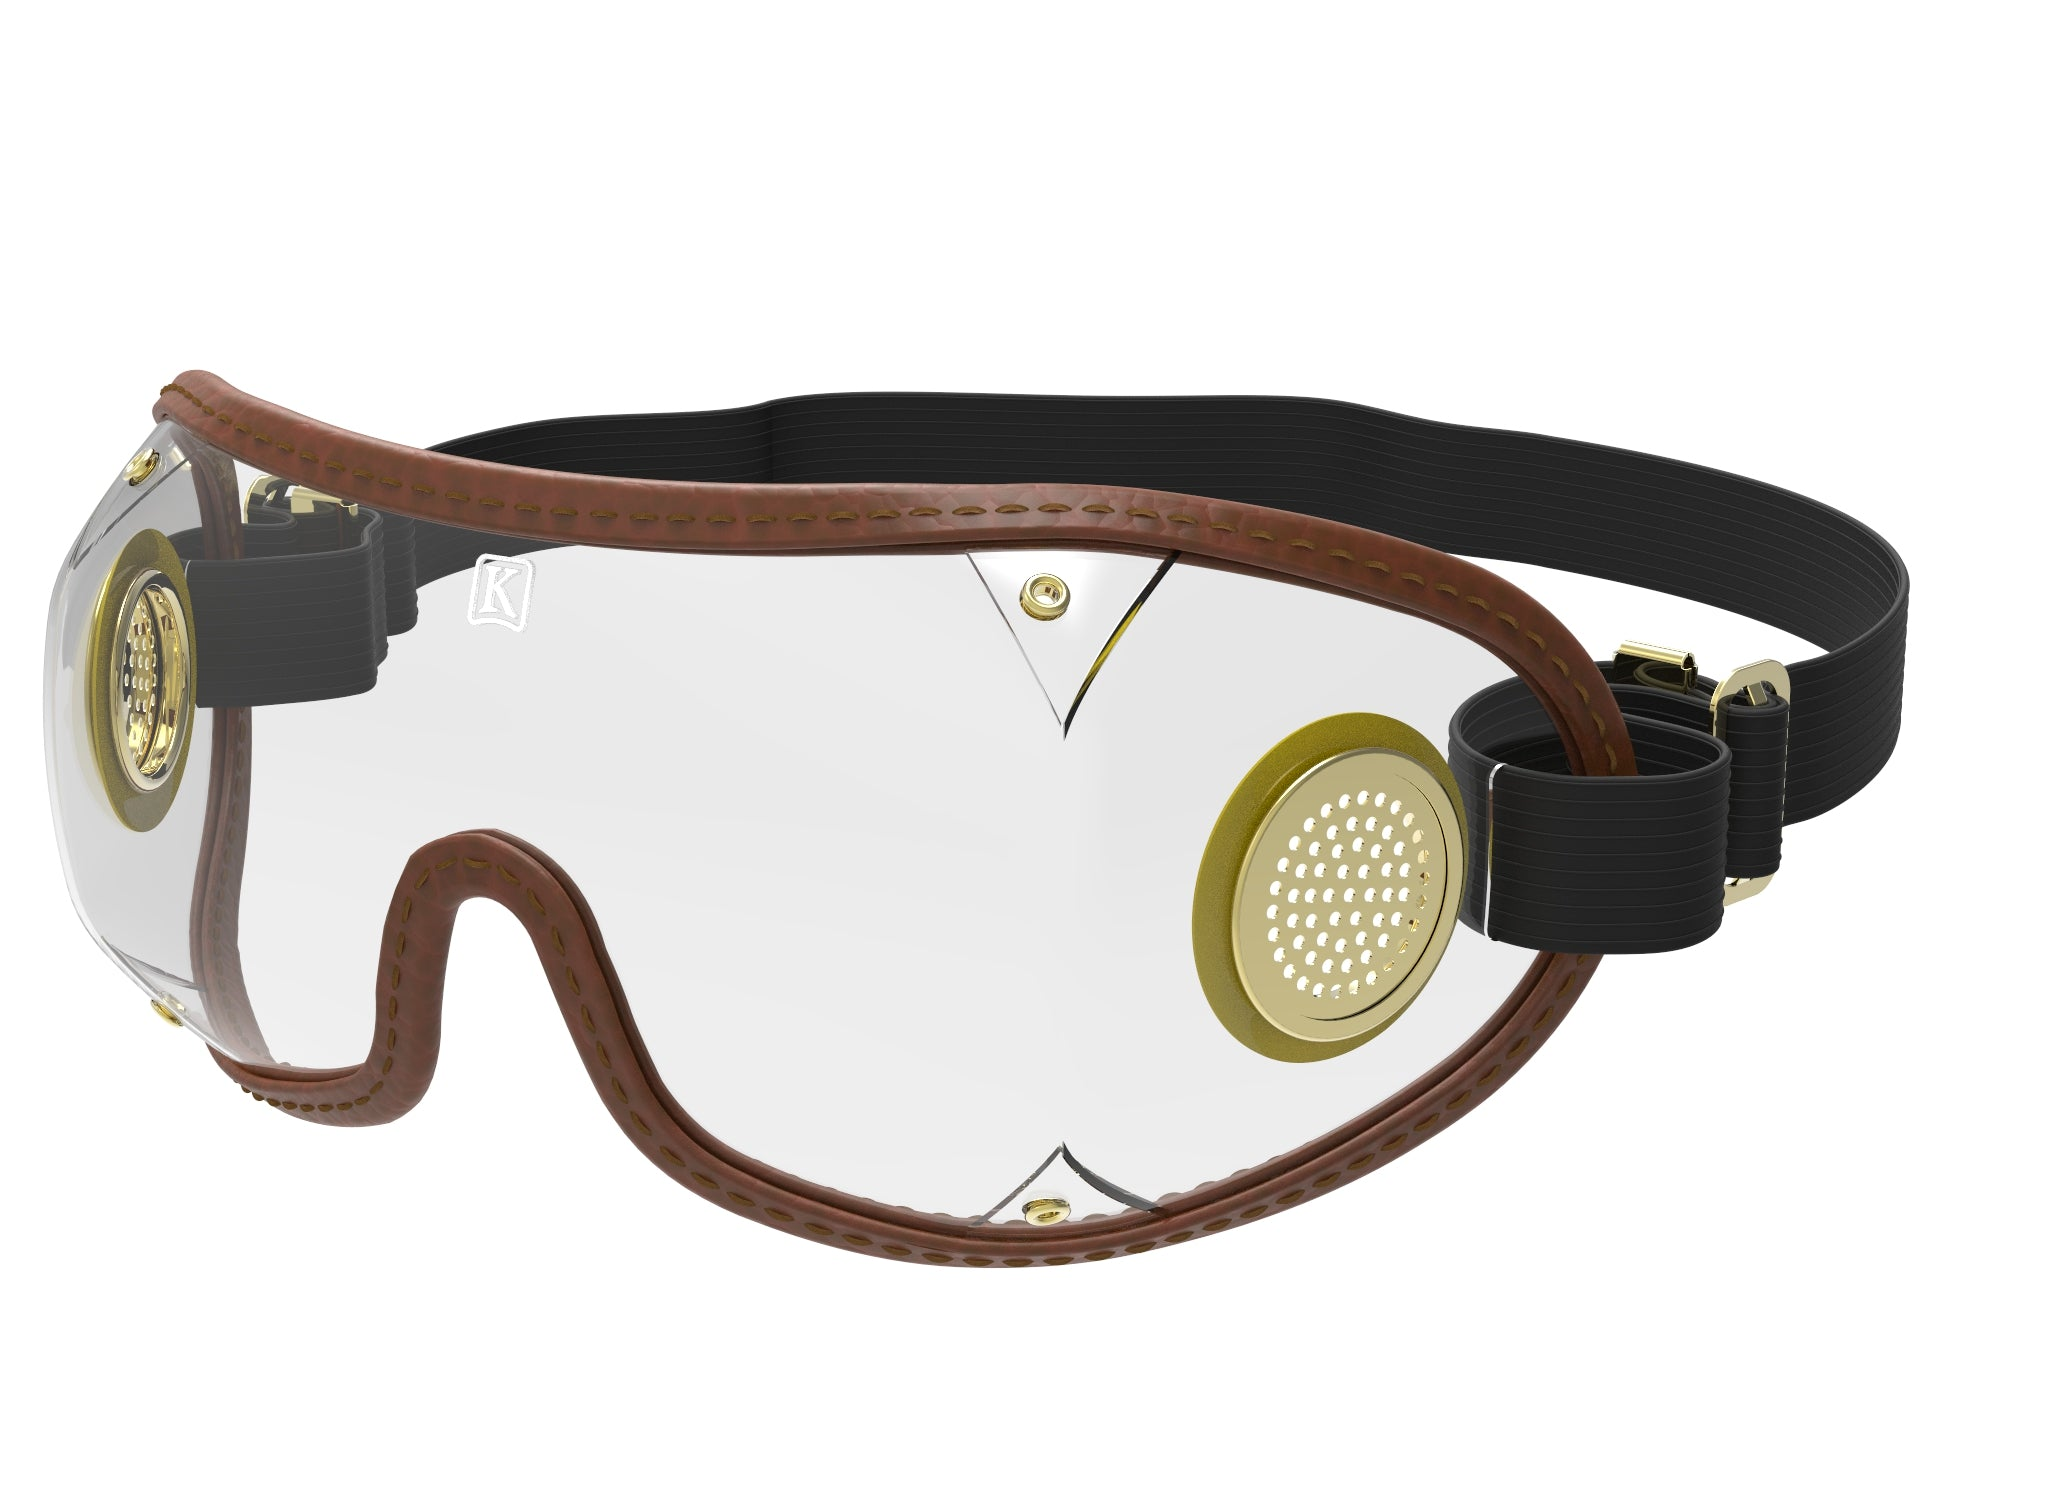 Kroop's Original Racing Goggle